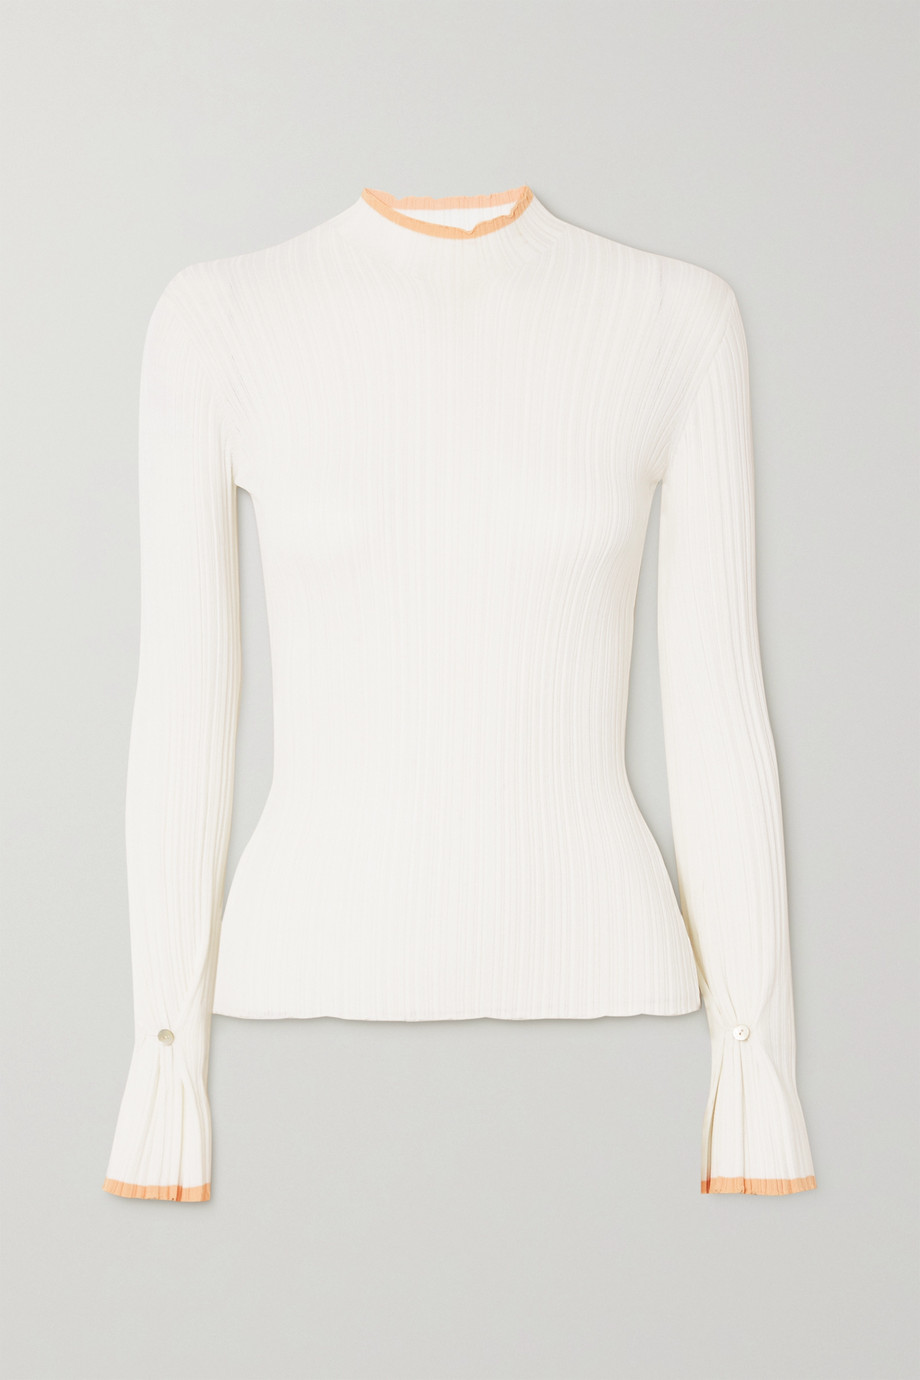 HOLZWEILER Heime ribbed-knit top